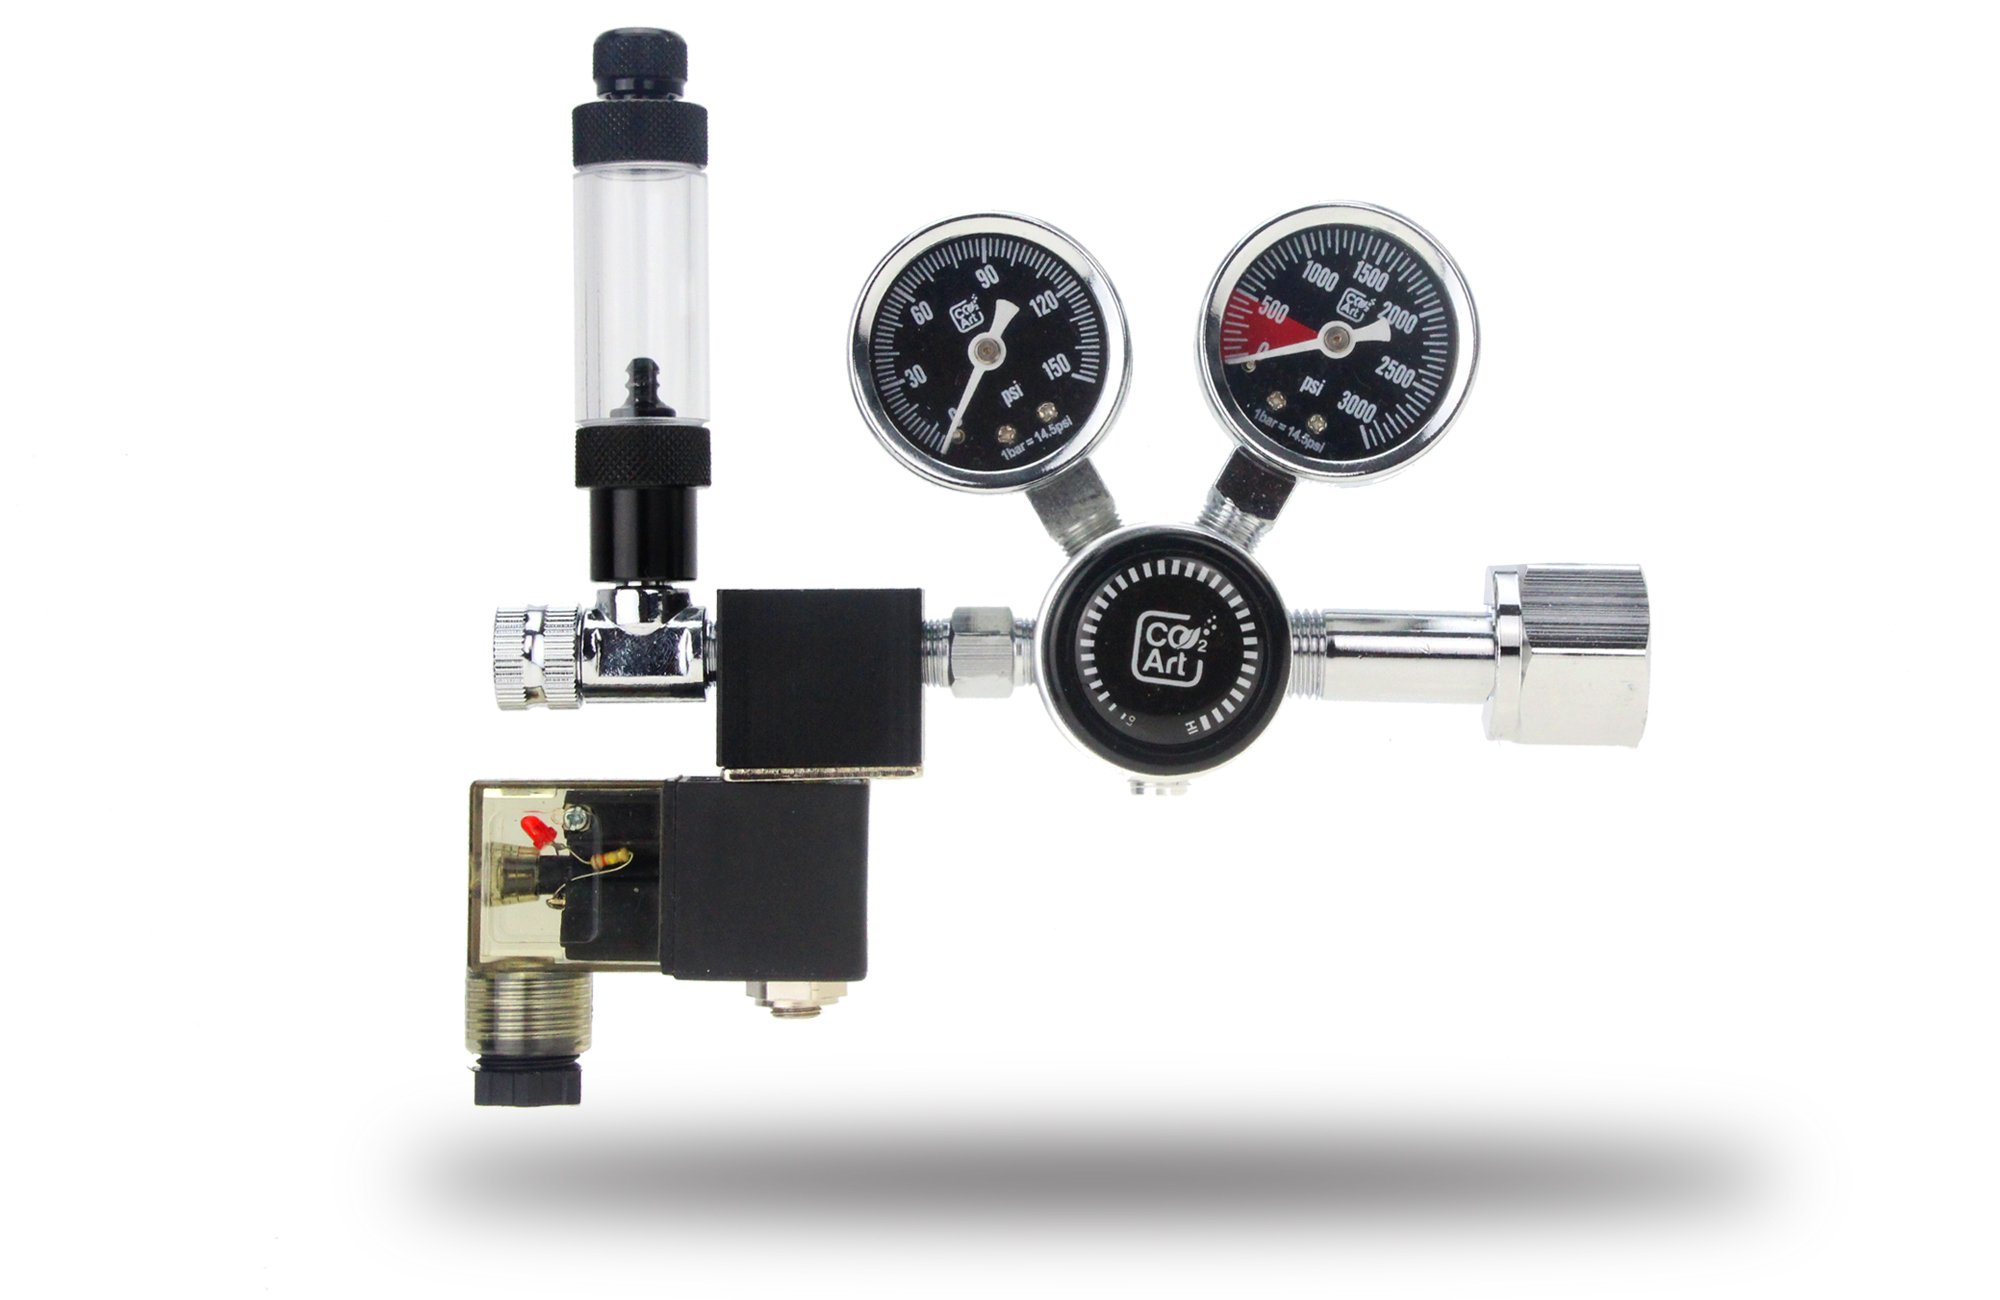 Co2 Art PRO-SE Series - Aquarium CO2 Dual Stage Regulator with Integrated Solenoid